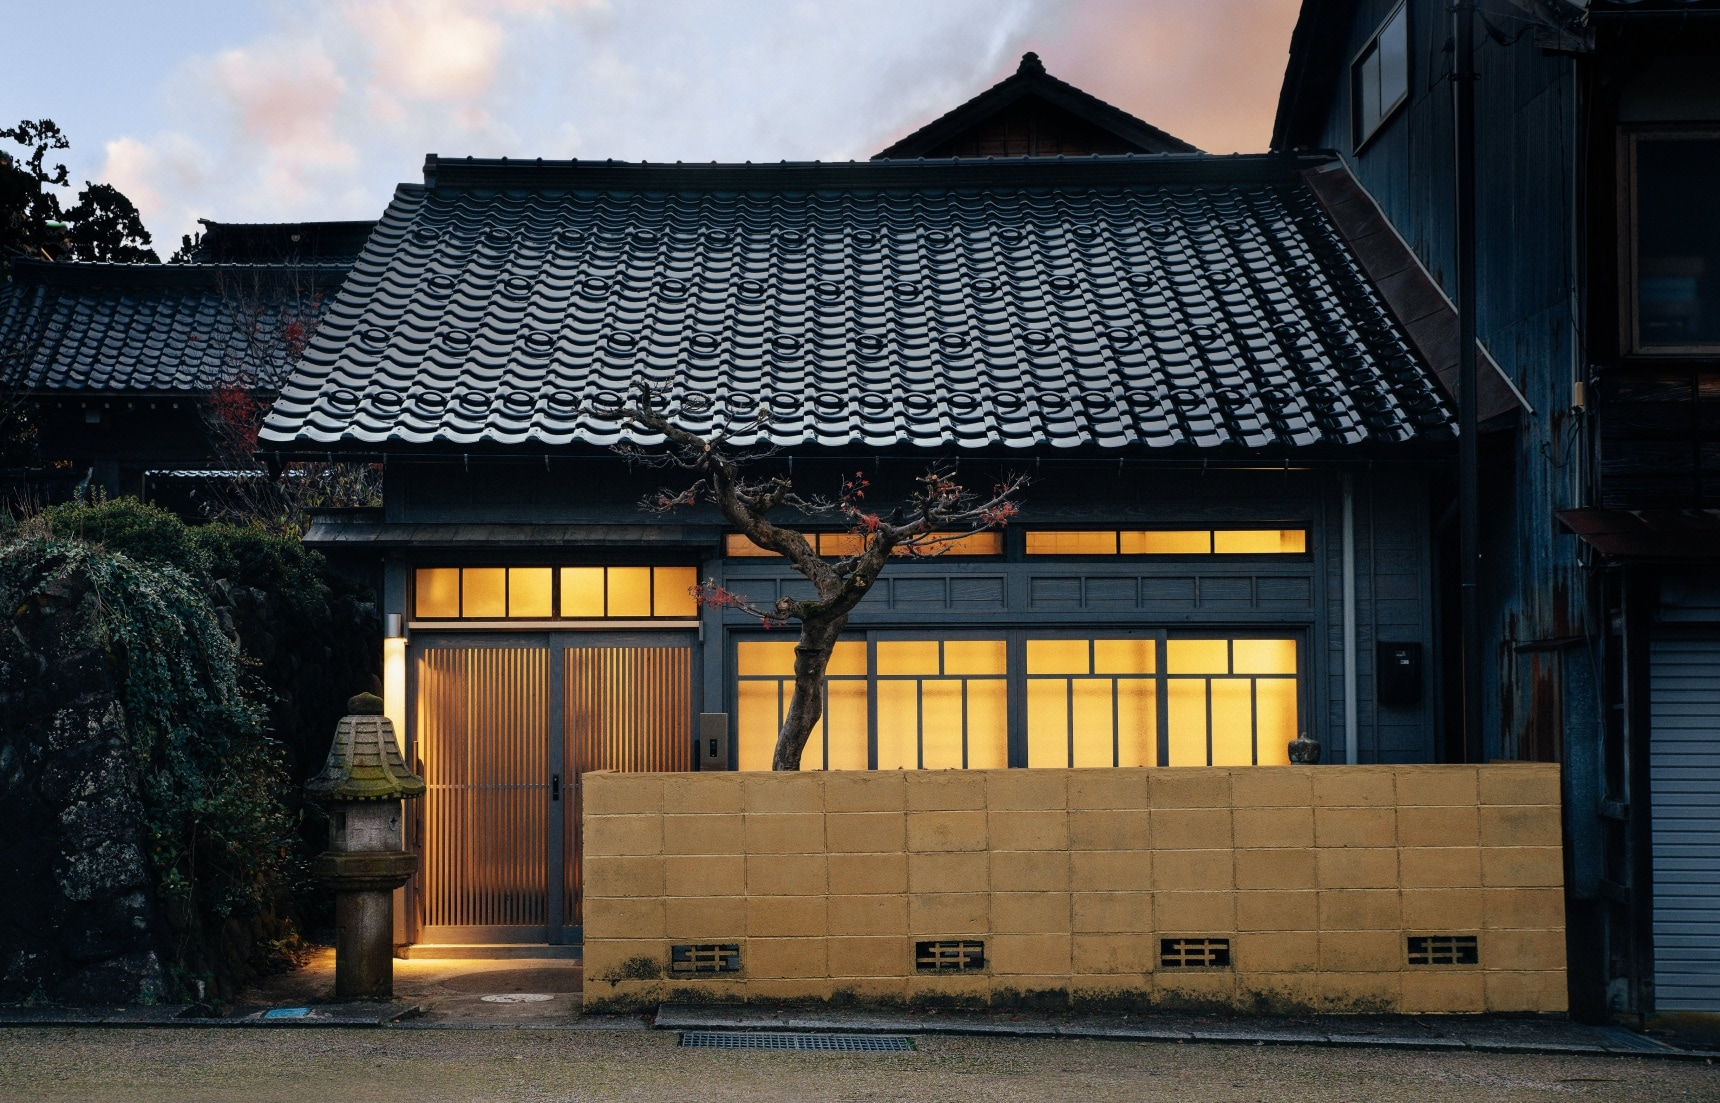 Stay in 'Real Japan' at this Traditional Home